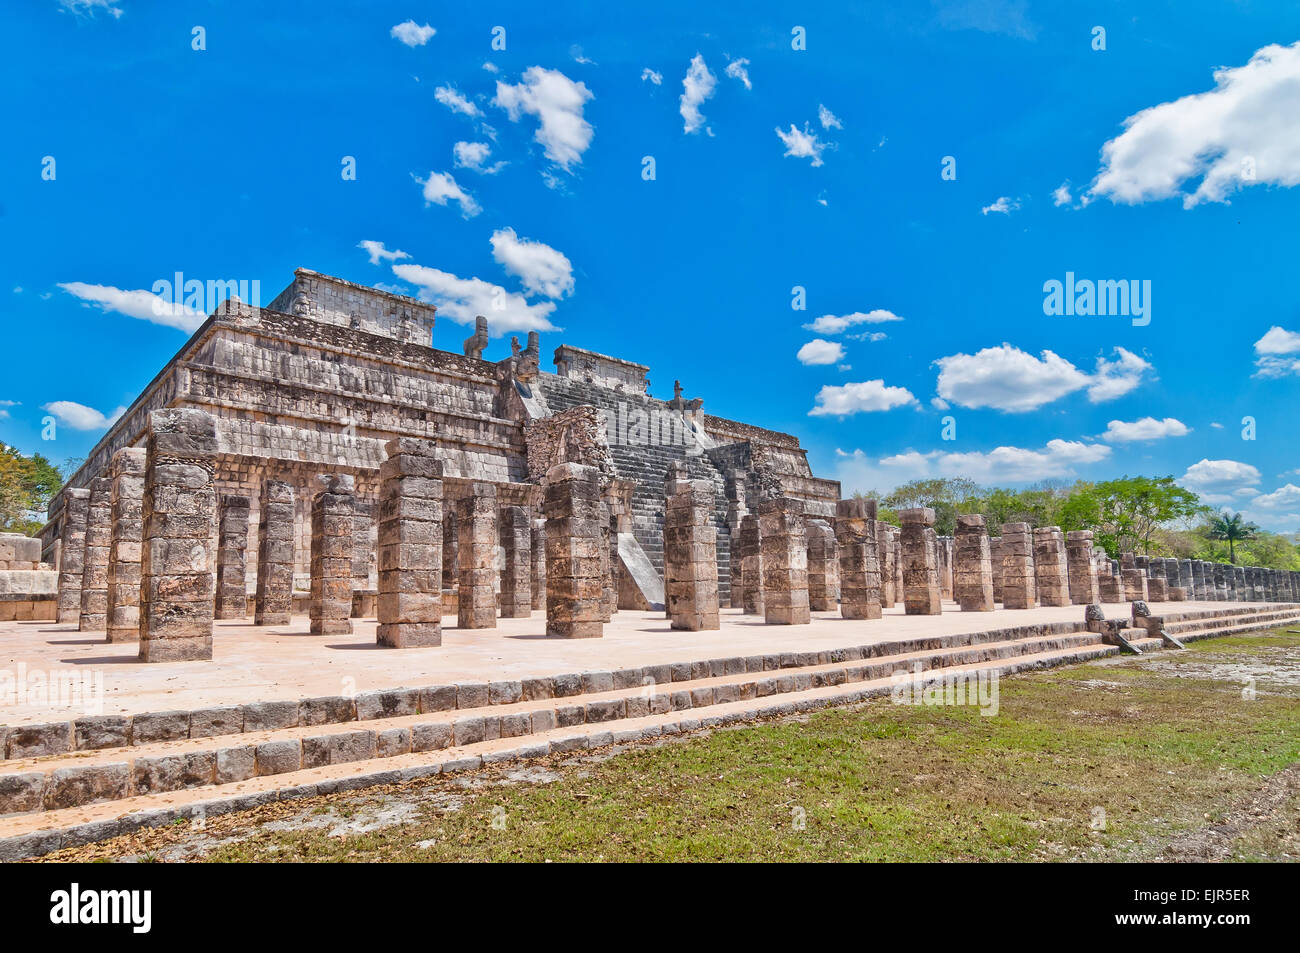 Chichen Itza is one of the most visited archaeological sites in Yucatan, Mexico - Stock Image